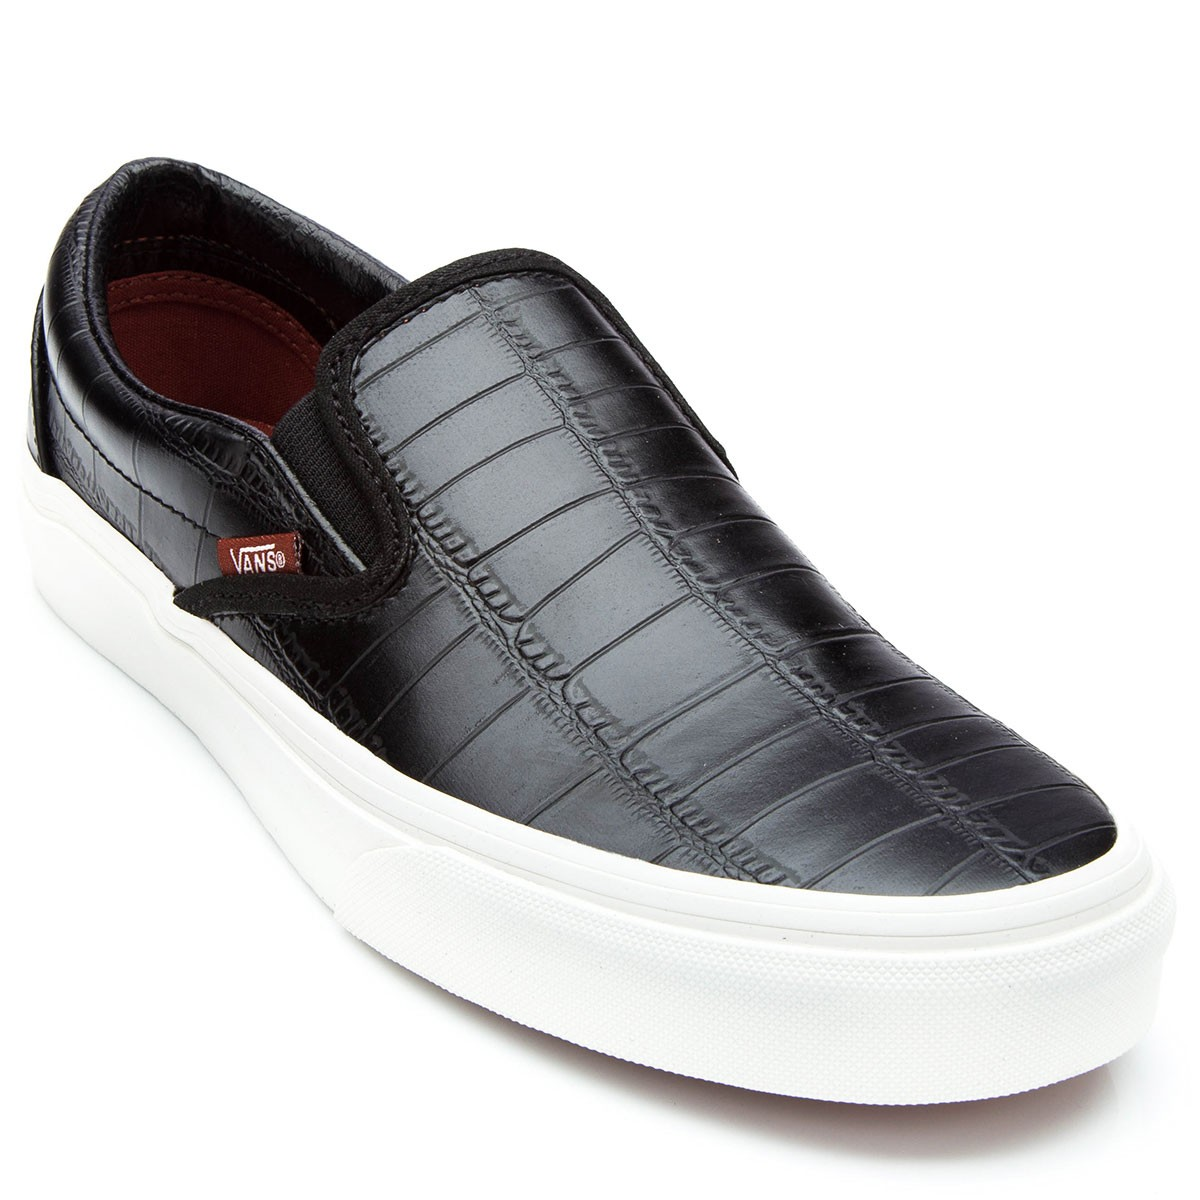 Cheap Used Vans Shoes For Sale